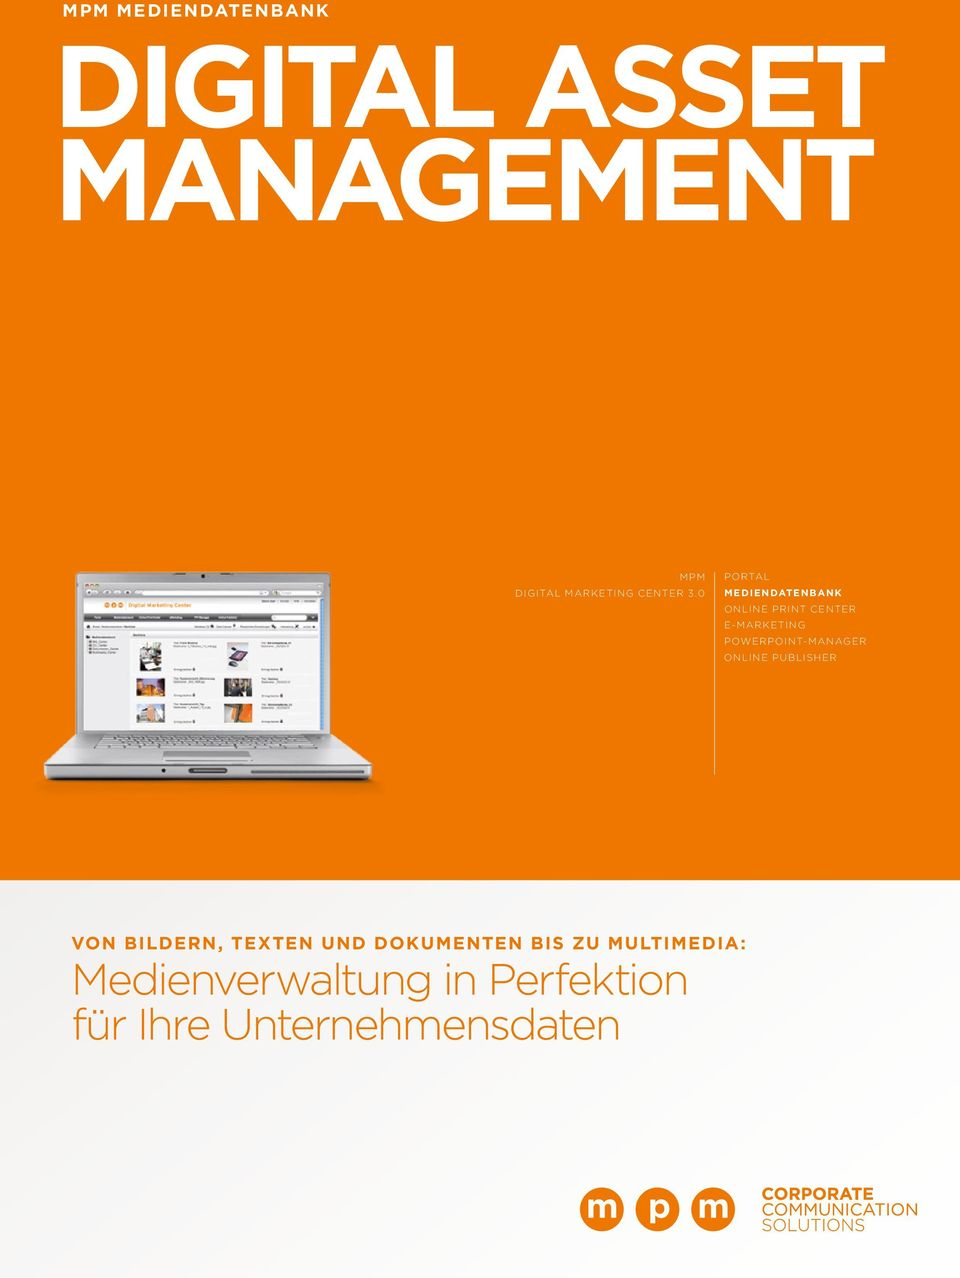 0 Portal MEDIENDATENBANK ONLINE PRINT CENTER E-MARKETING